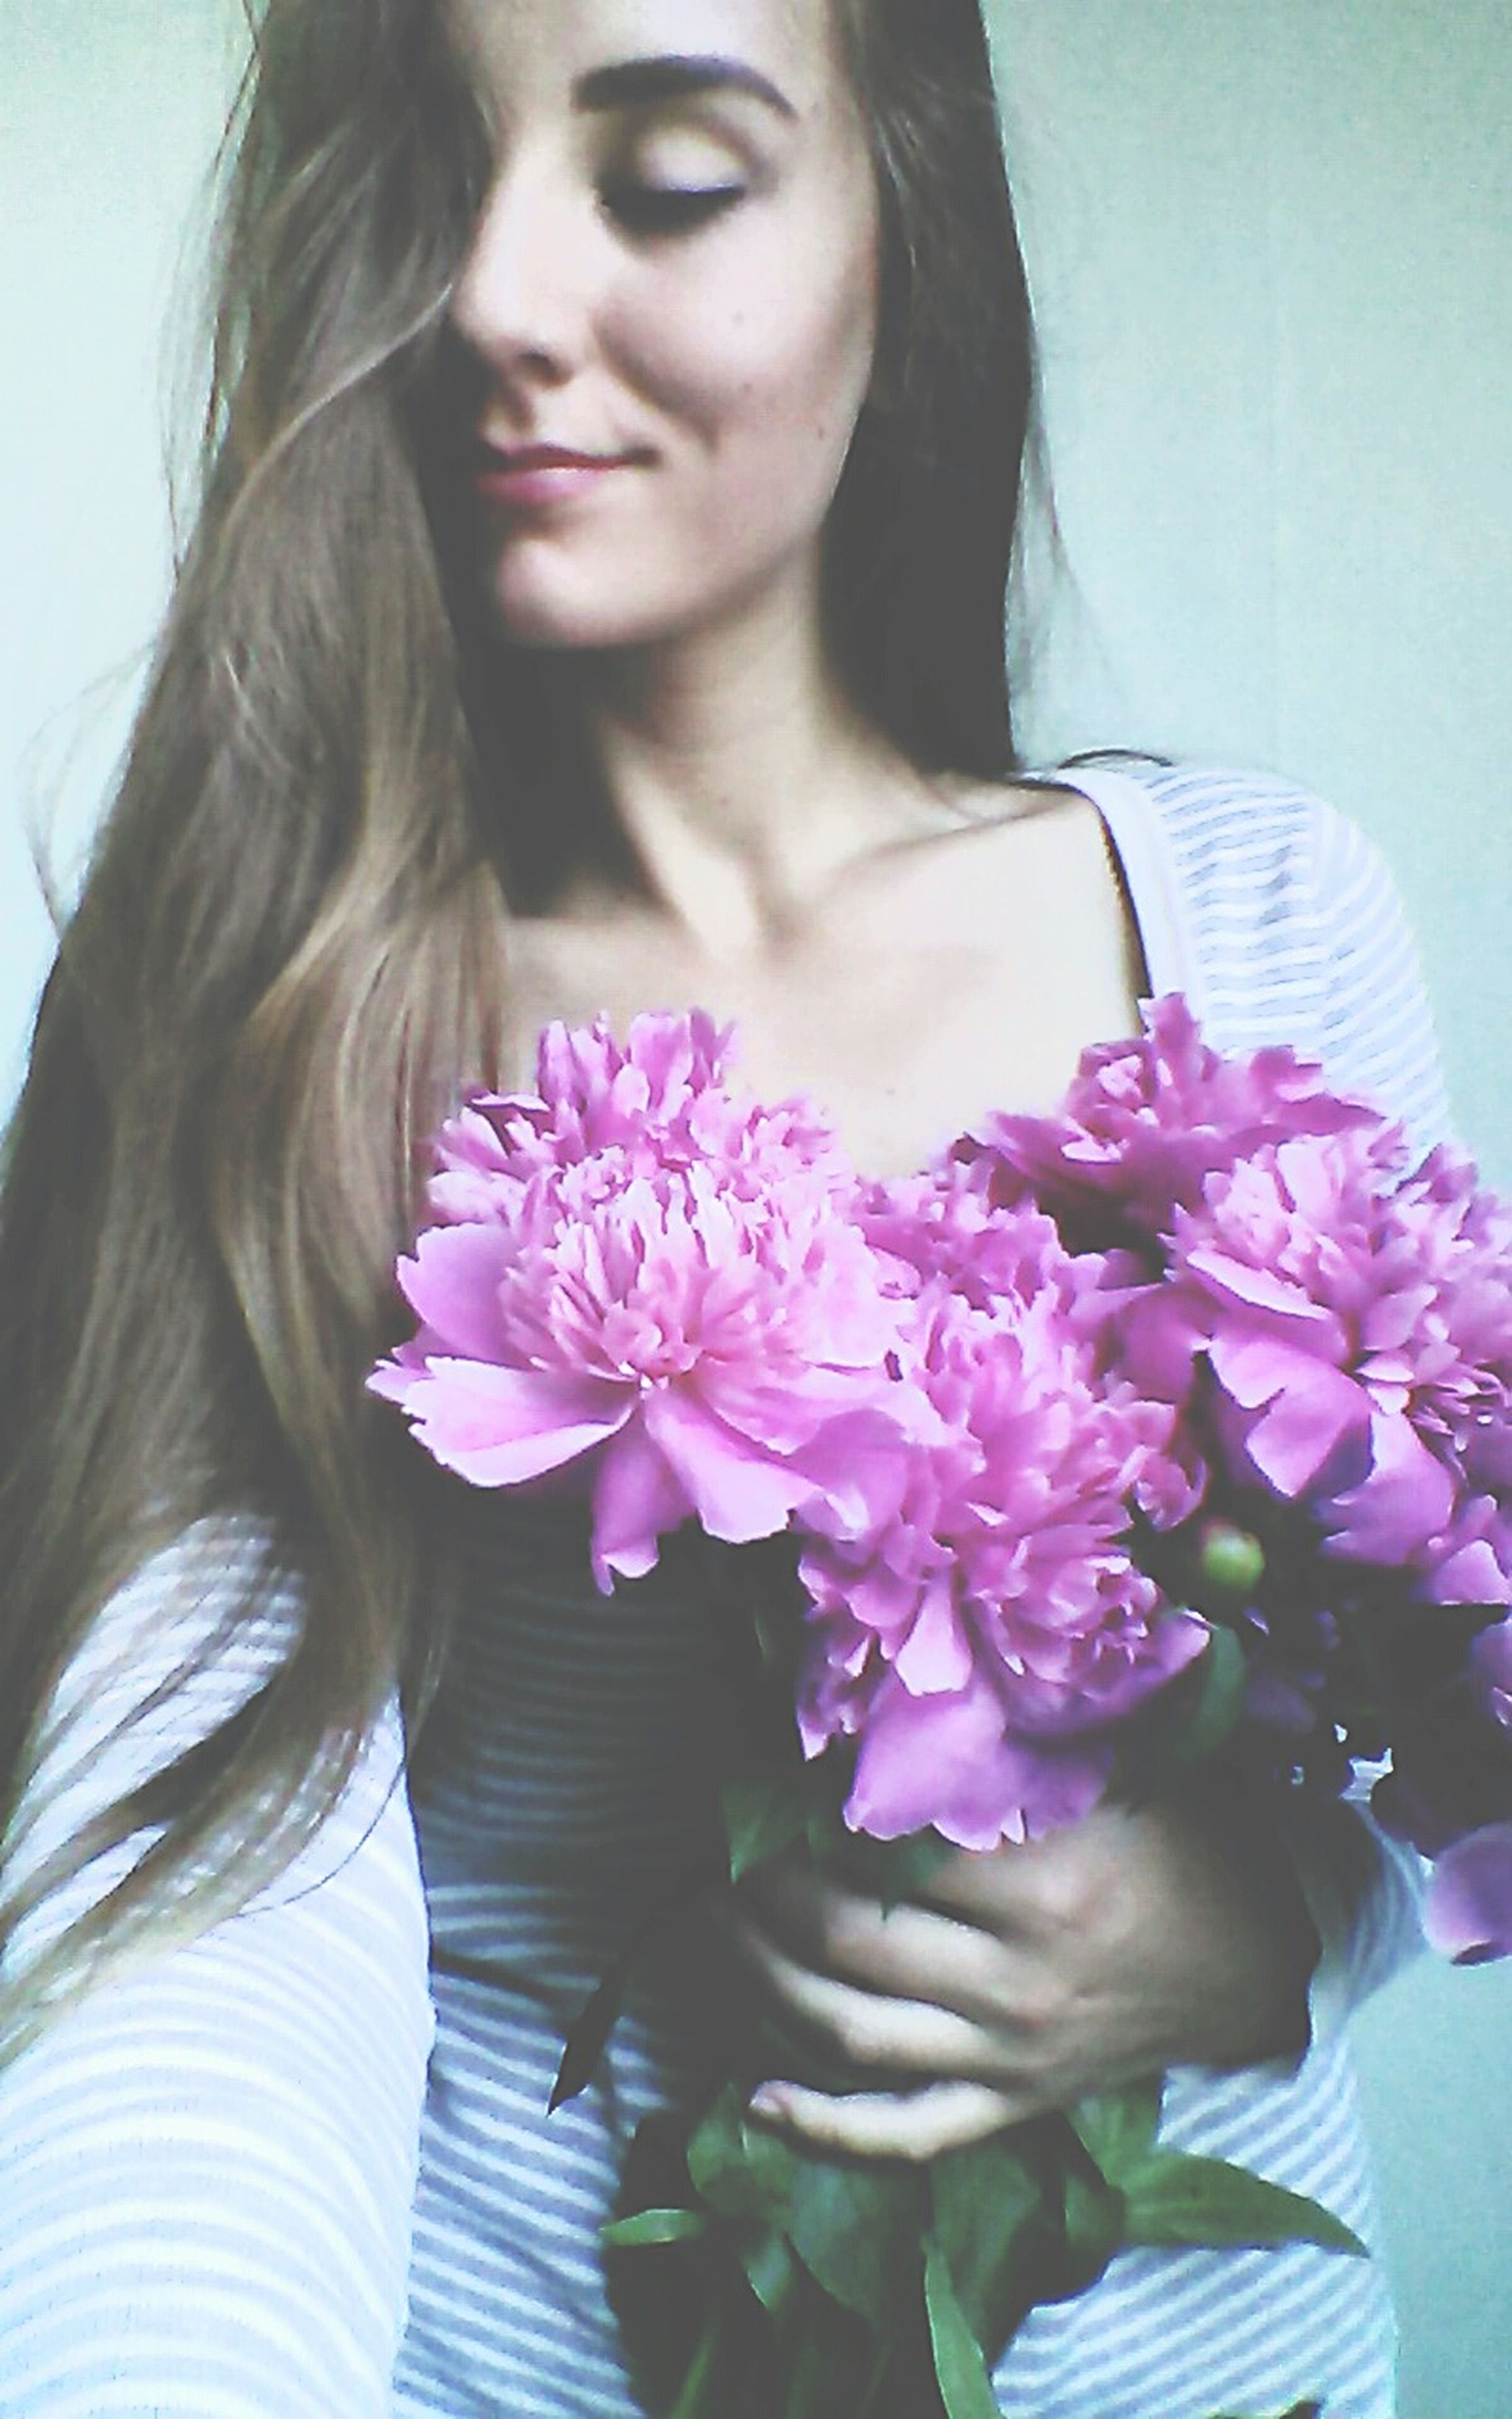 flower, young women, young adult, person, lifestyles, long hair, leisure activity, front view, fragility, freshness, petal, casual clothing, pink color, portrait, flower head, close-up, indoors